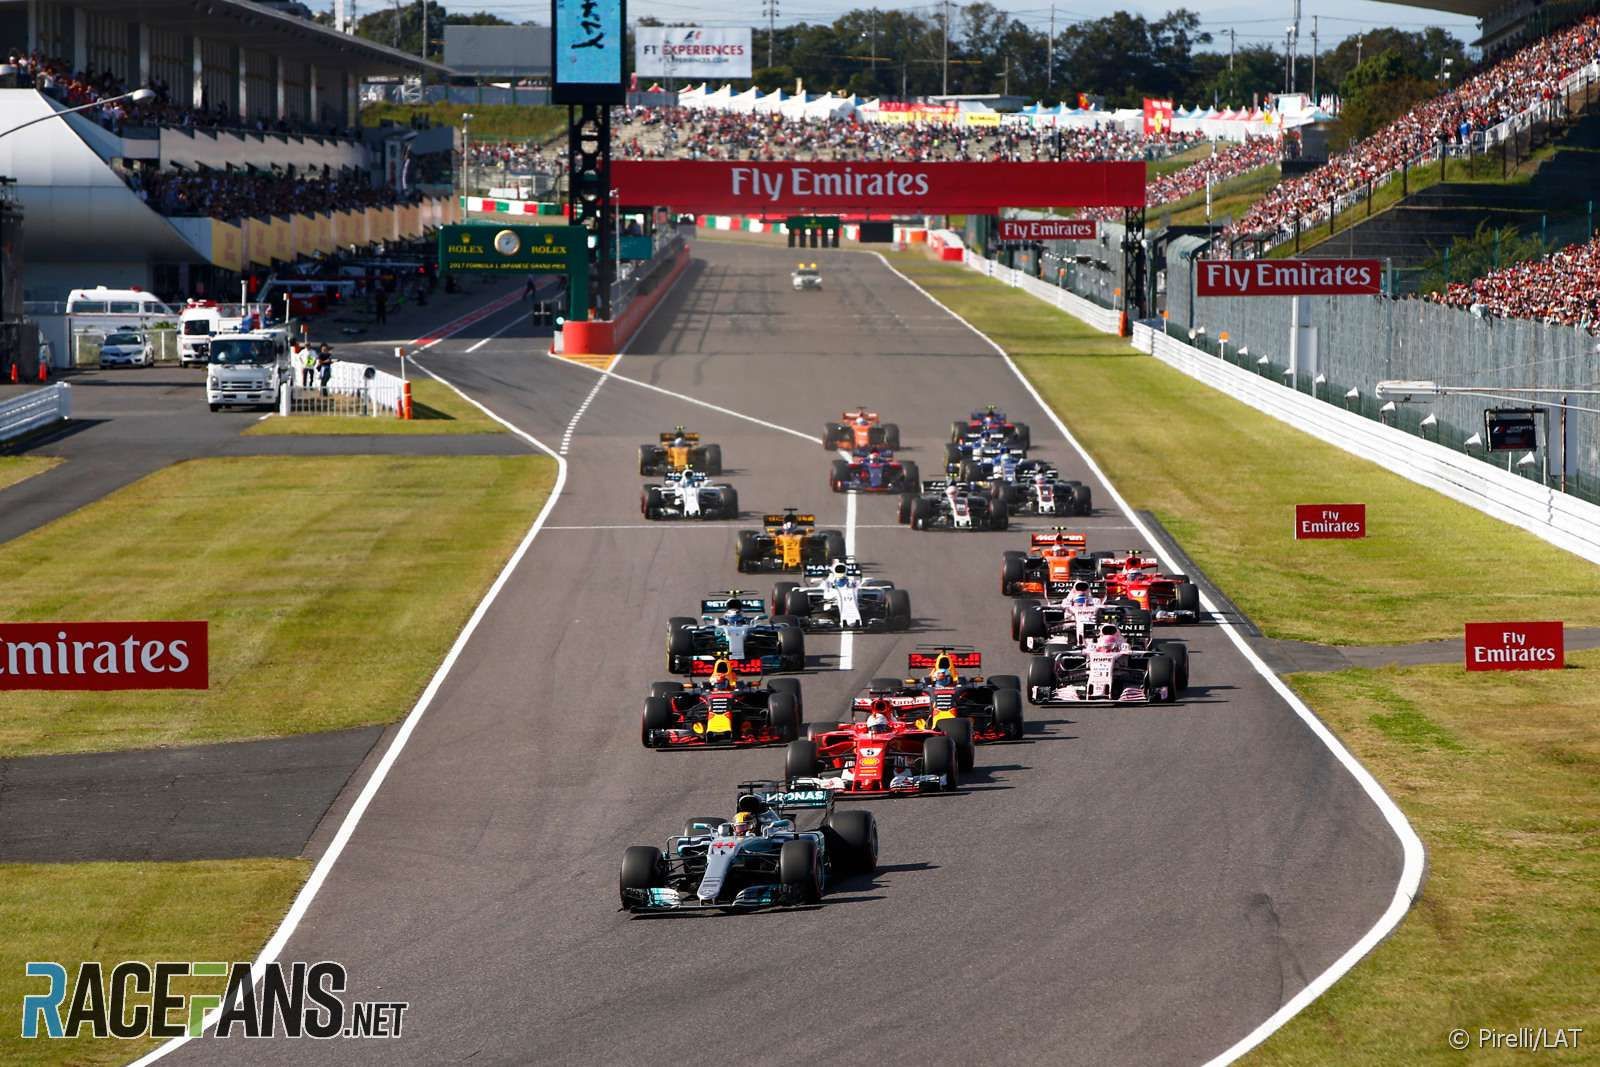 Sky responds to F1 TV with cut-price F1 channel stream - RaceFans